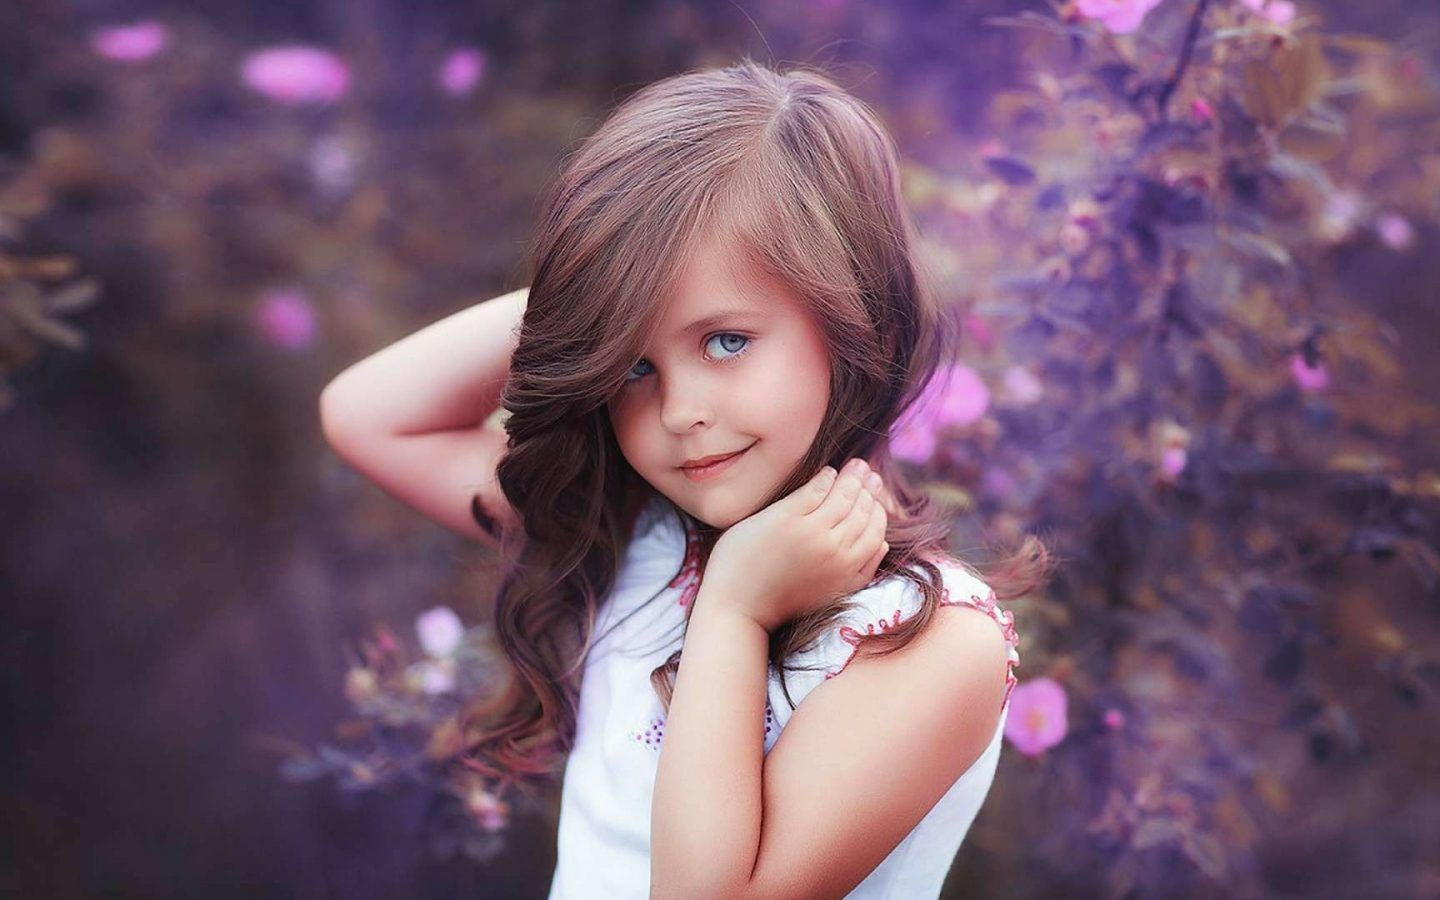 47 Cute Beautiful Hd Wallpaper For Girls Phone Background In 2021 Baby Girl Wallpaper Baby Girl Pictures Beautiful Baby Girl